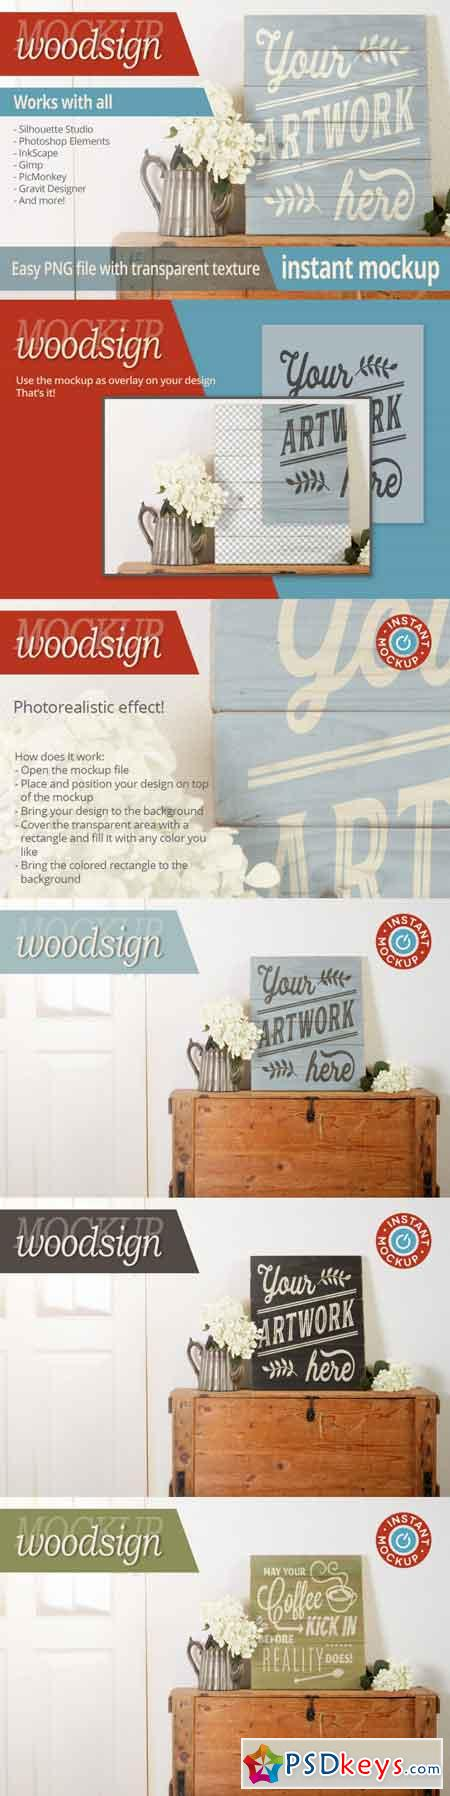 Instant png photorealistic woodsign mockup 3470103